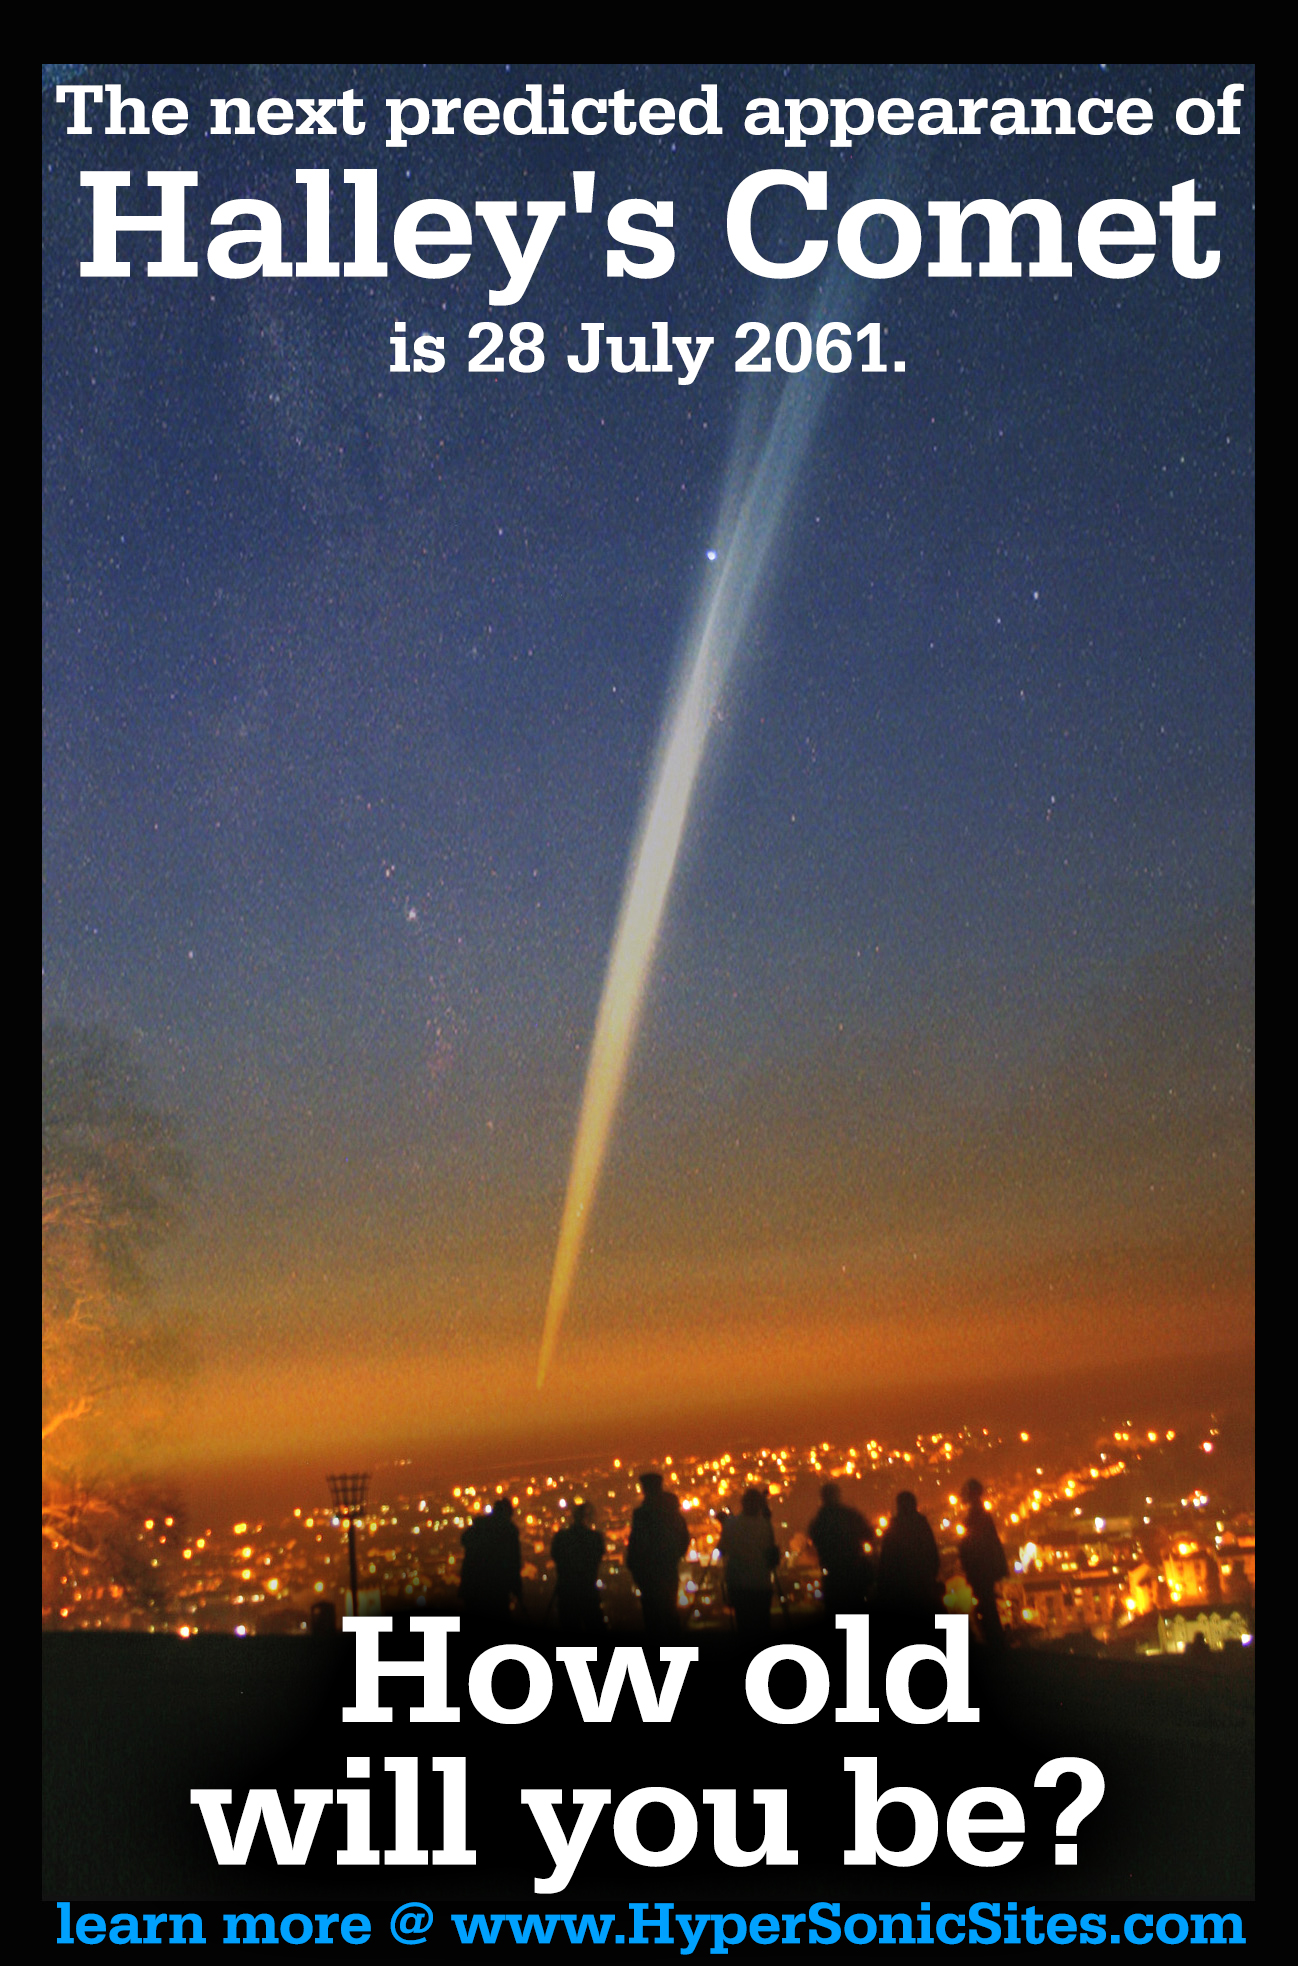 The next predicted appearance of Halley's Comet is 28 July 2061. How old  will you be?